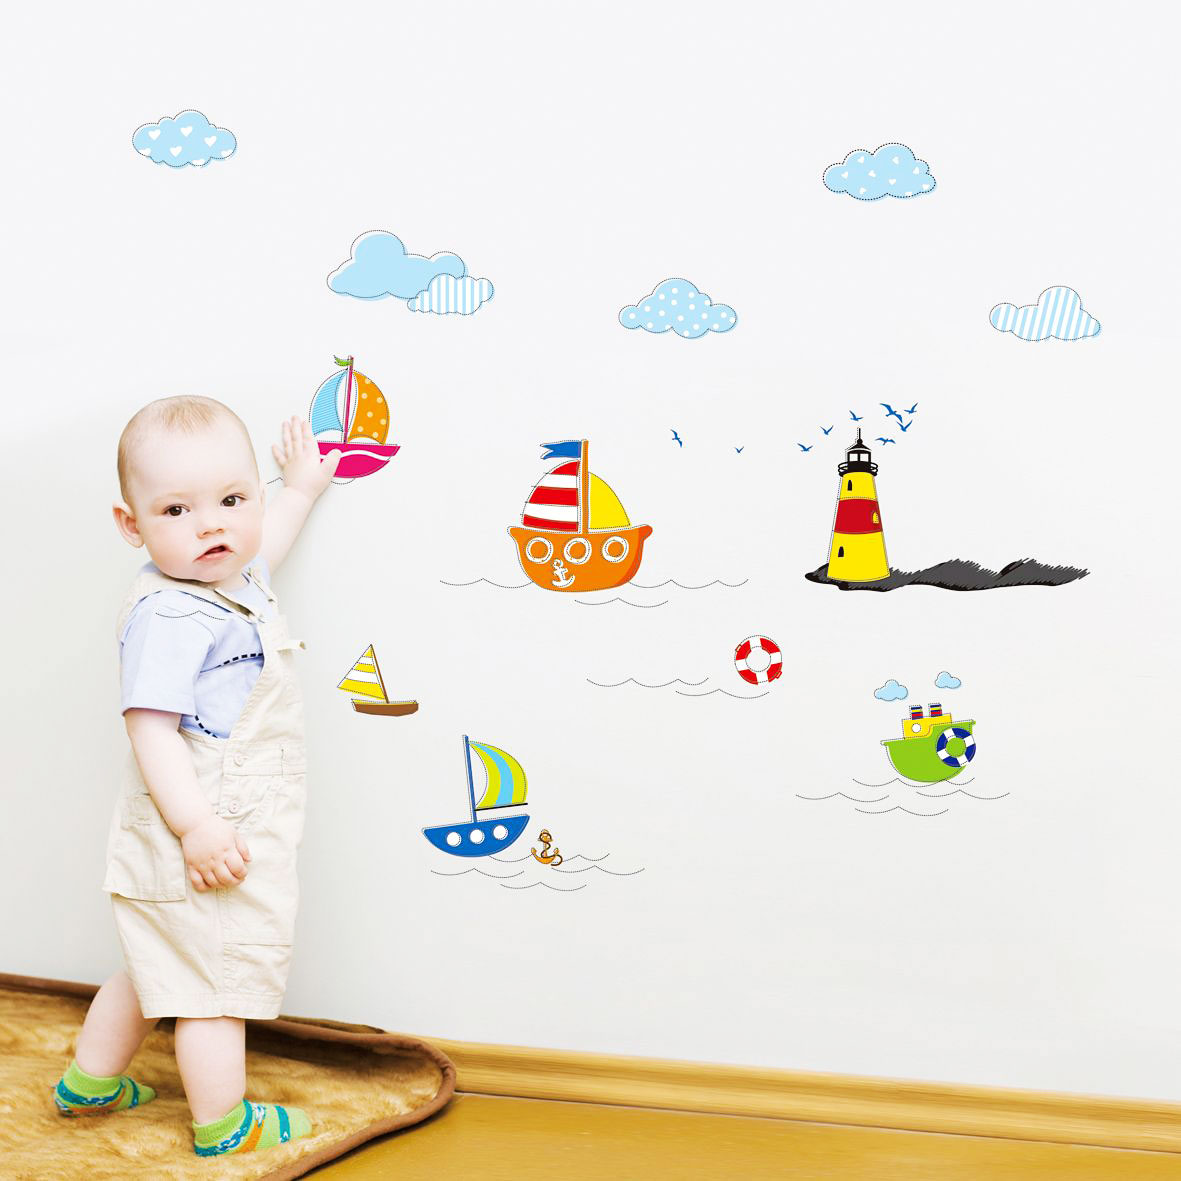 wandsticker wandtattoo schiffe boote dampfer leuchtturm babyzimmer kinderzimmer ebay. Black Bedroom Furniture Sets. Home Design Ideas